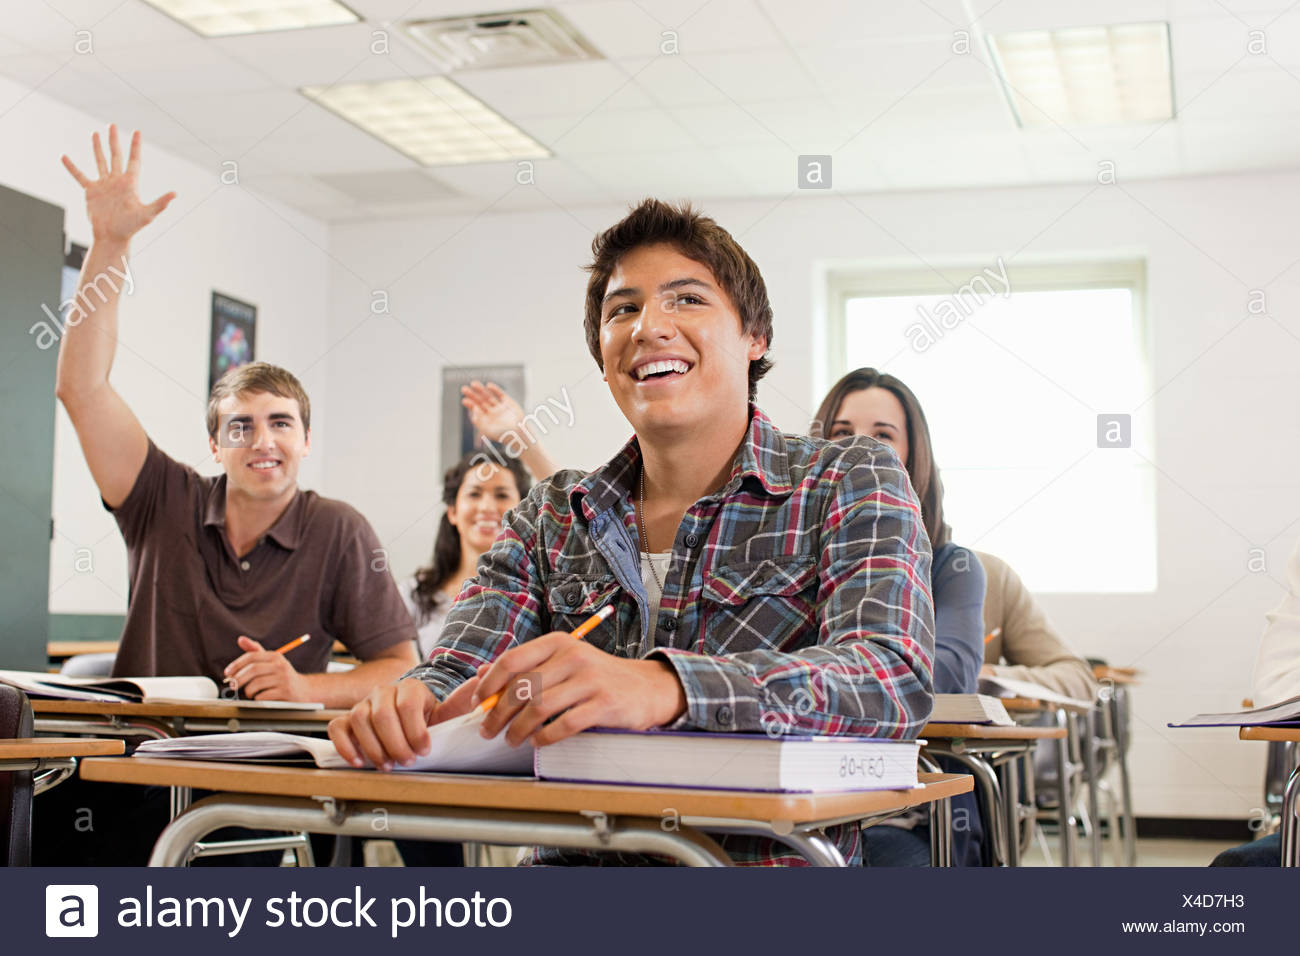 High school students sitting in classroom - Stock Image